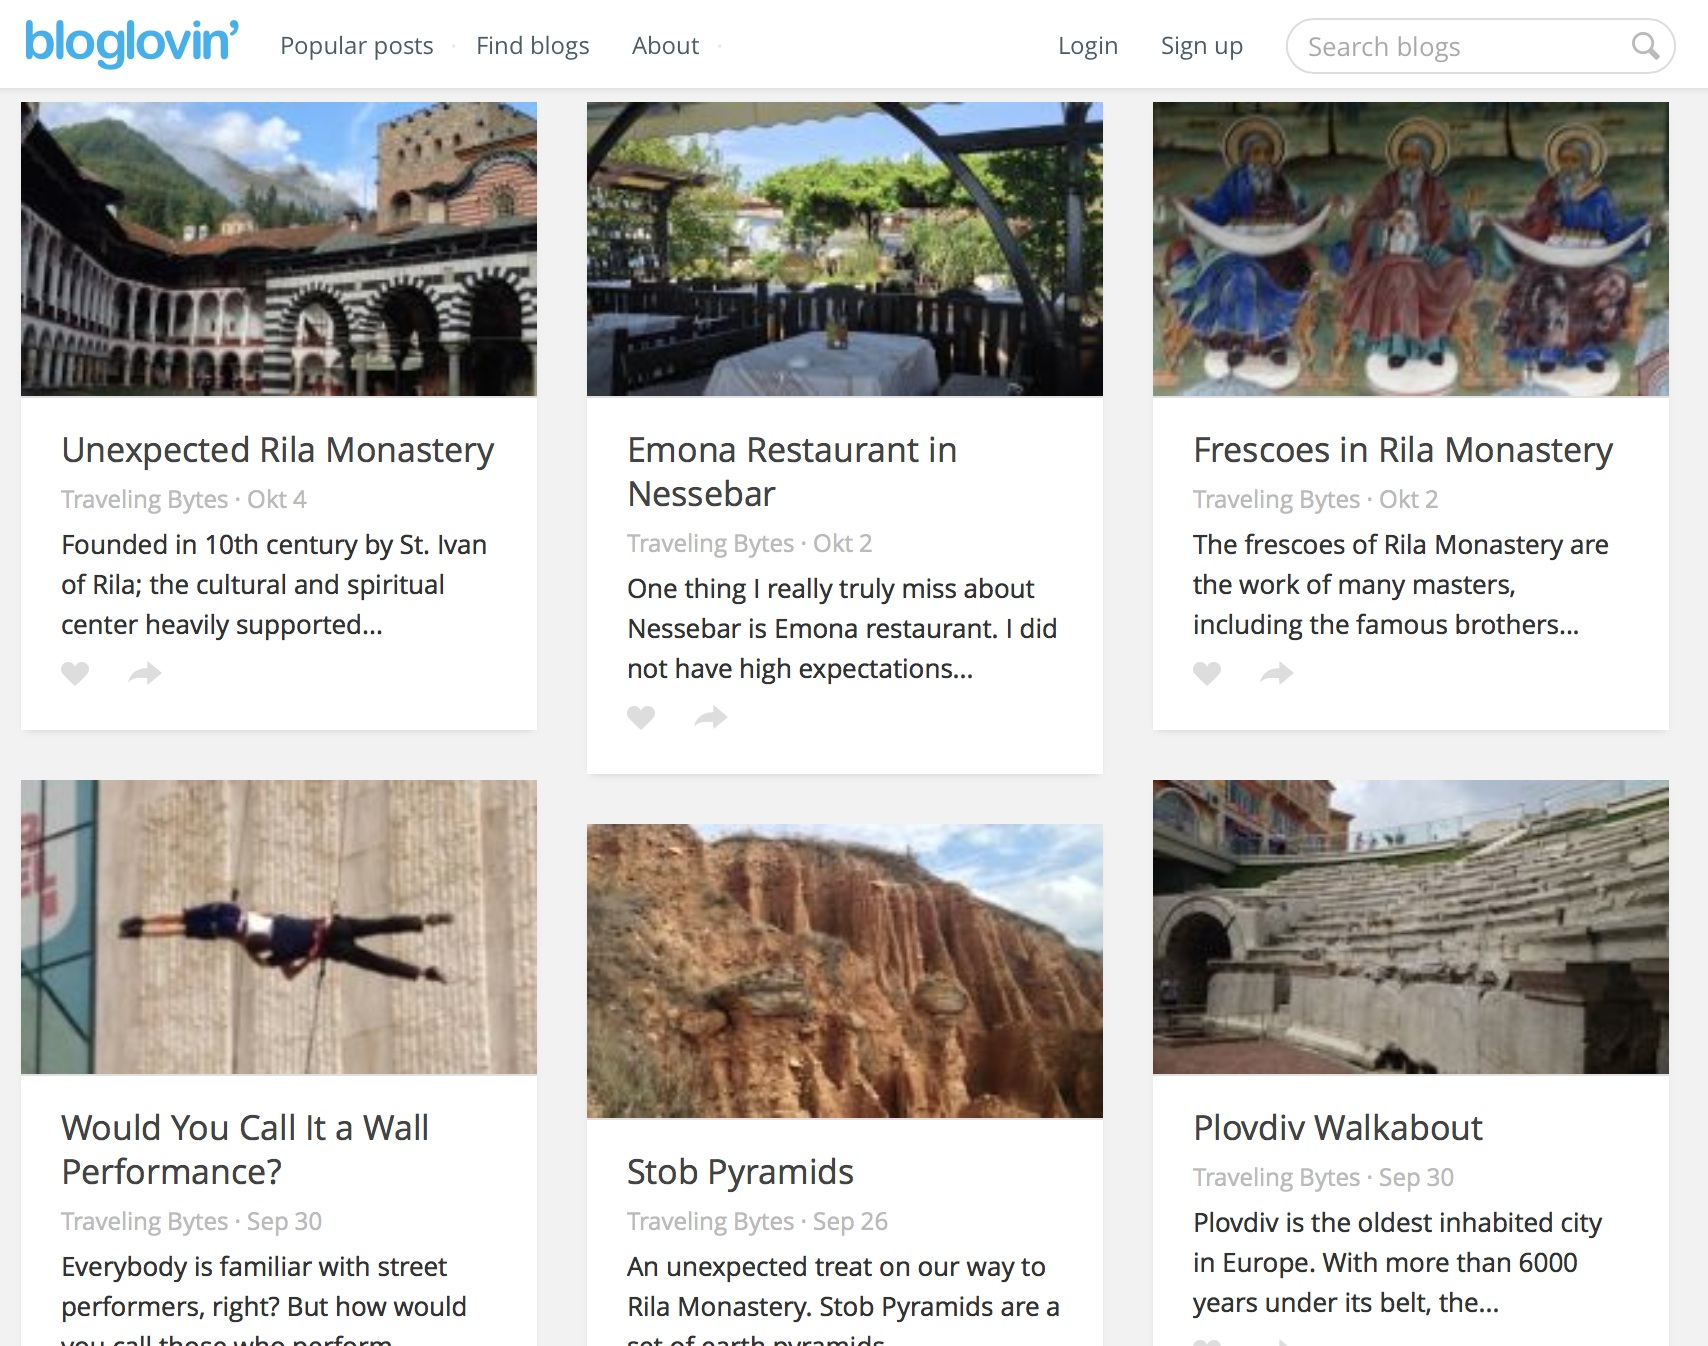 Bloglovin feed with images